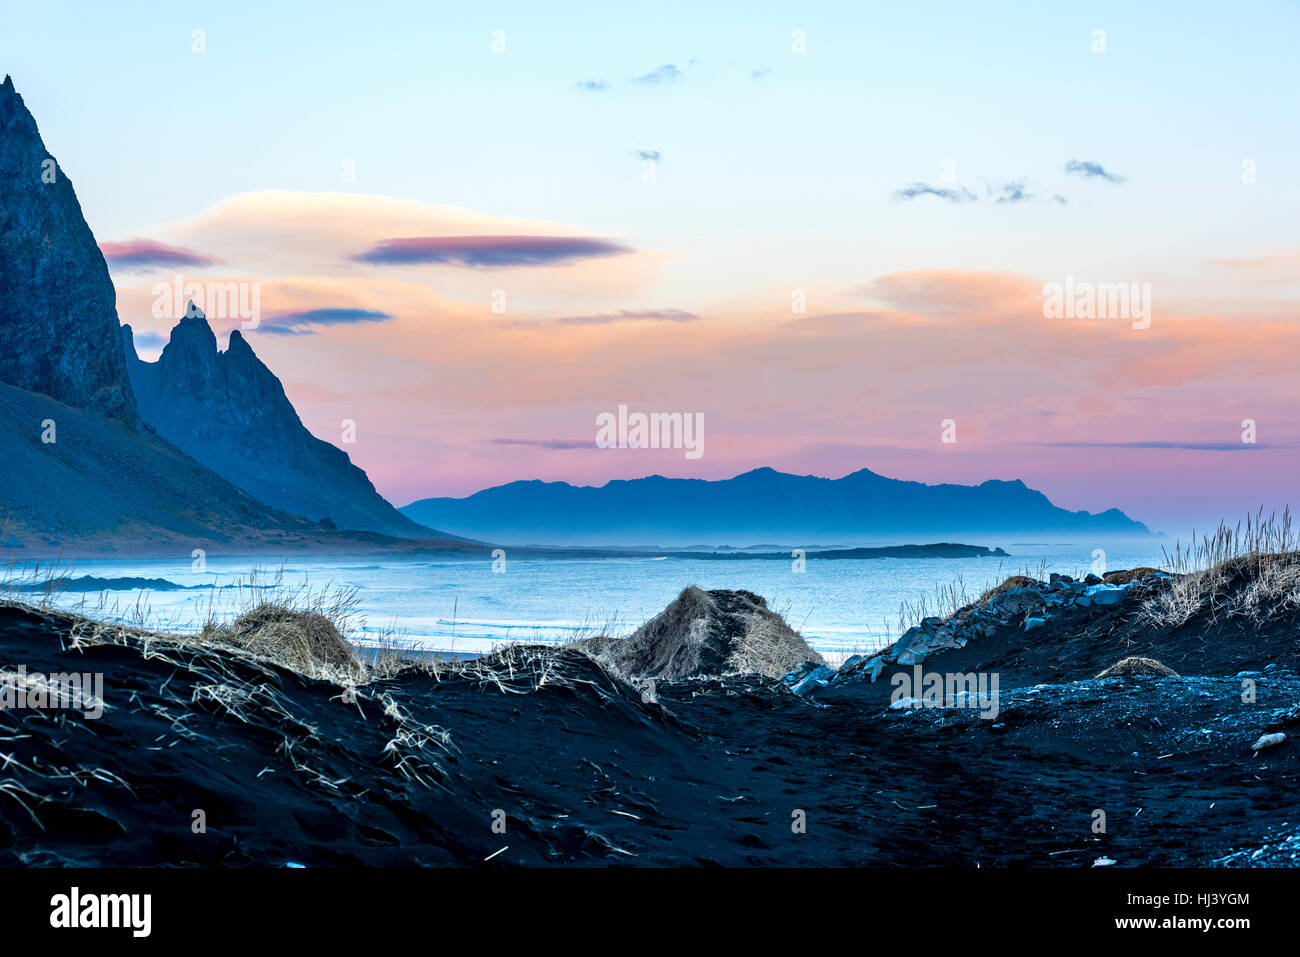 A volcanic sand beach in Iceland framed against jagged mountains and a beautiful pastel sunset as day slips into - Stock Image